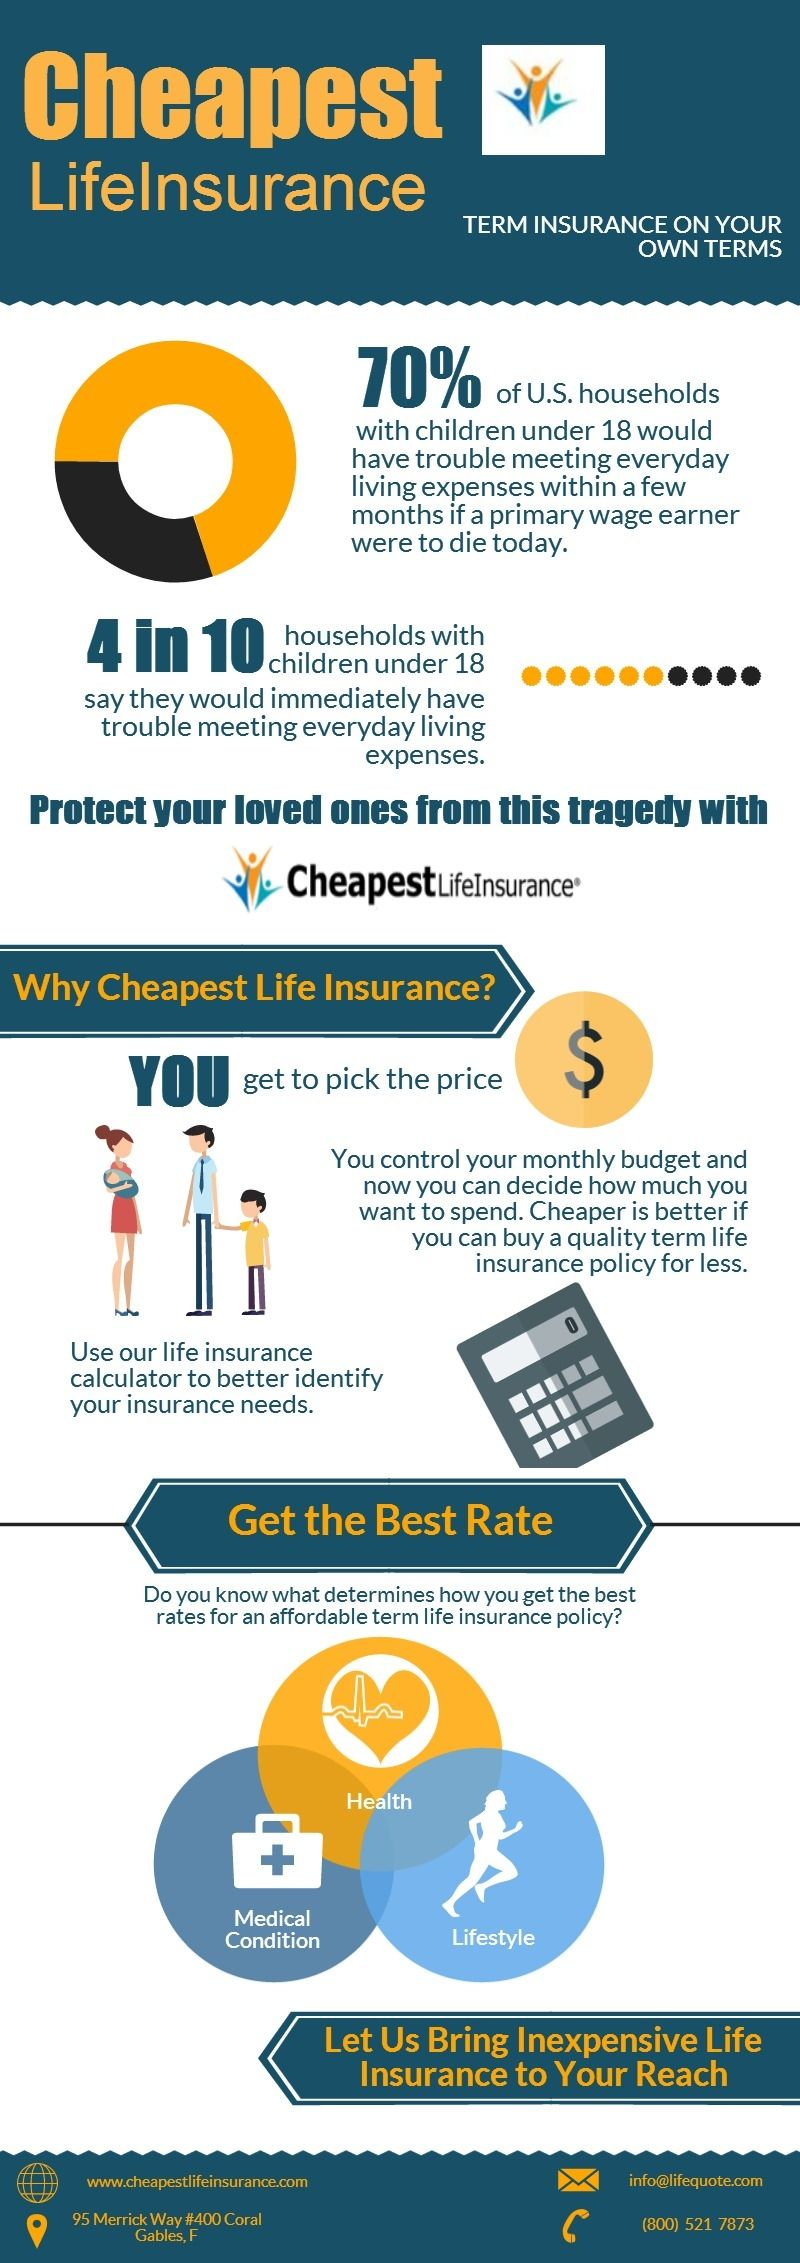 Get The Lowest Life Insurance Online Quotes And Control Your